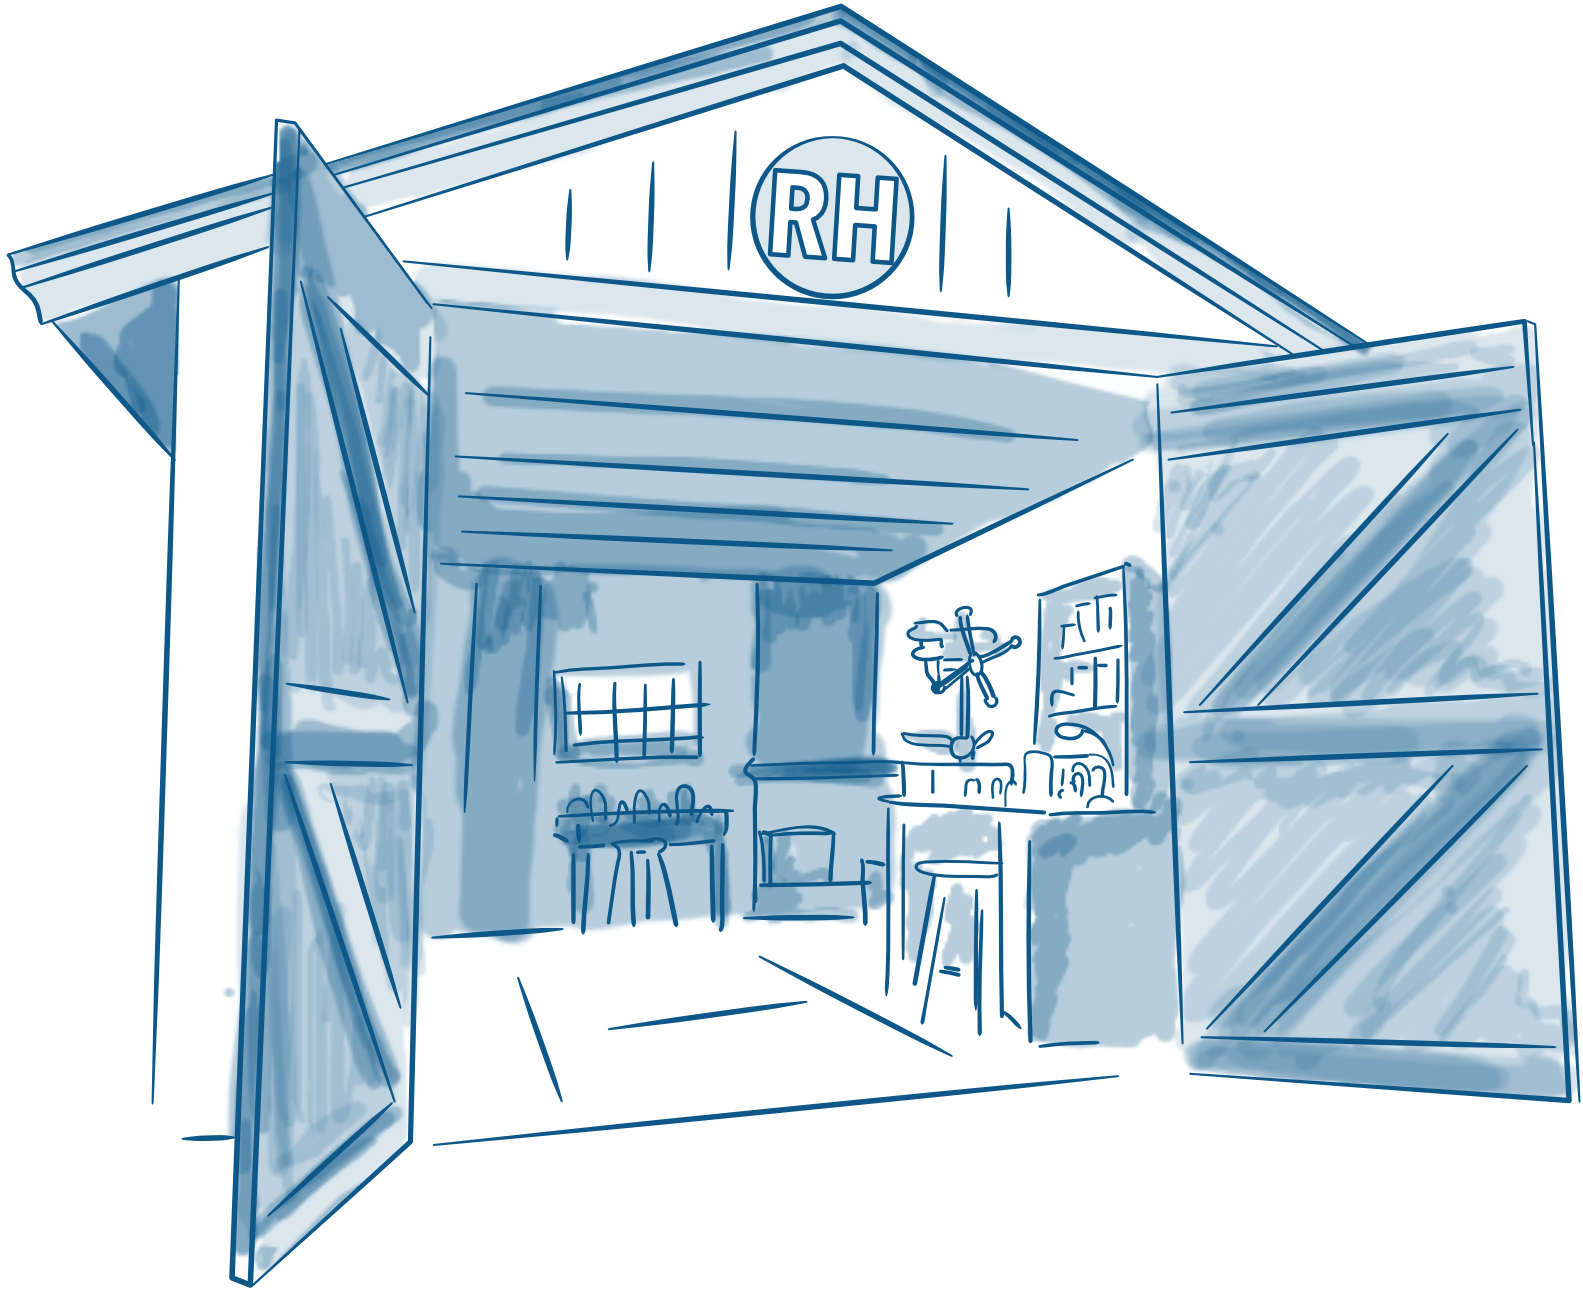 Illustration of a garage